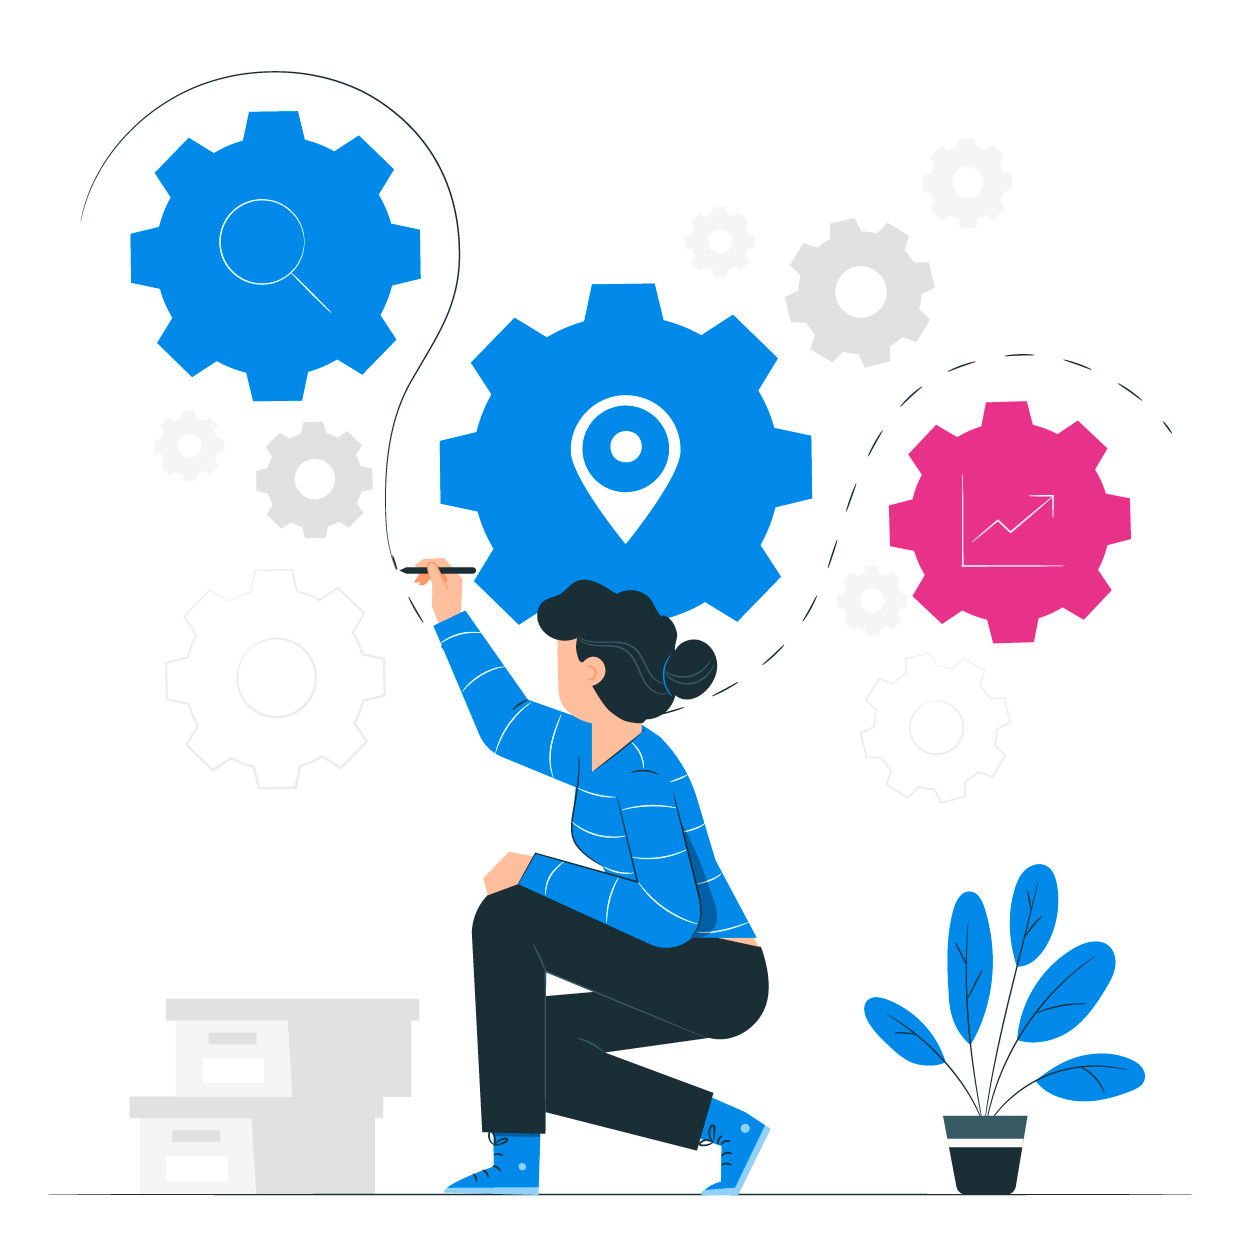 Location Intelligence Triggers for your App